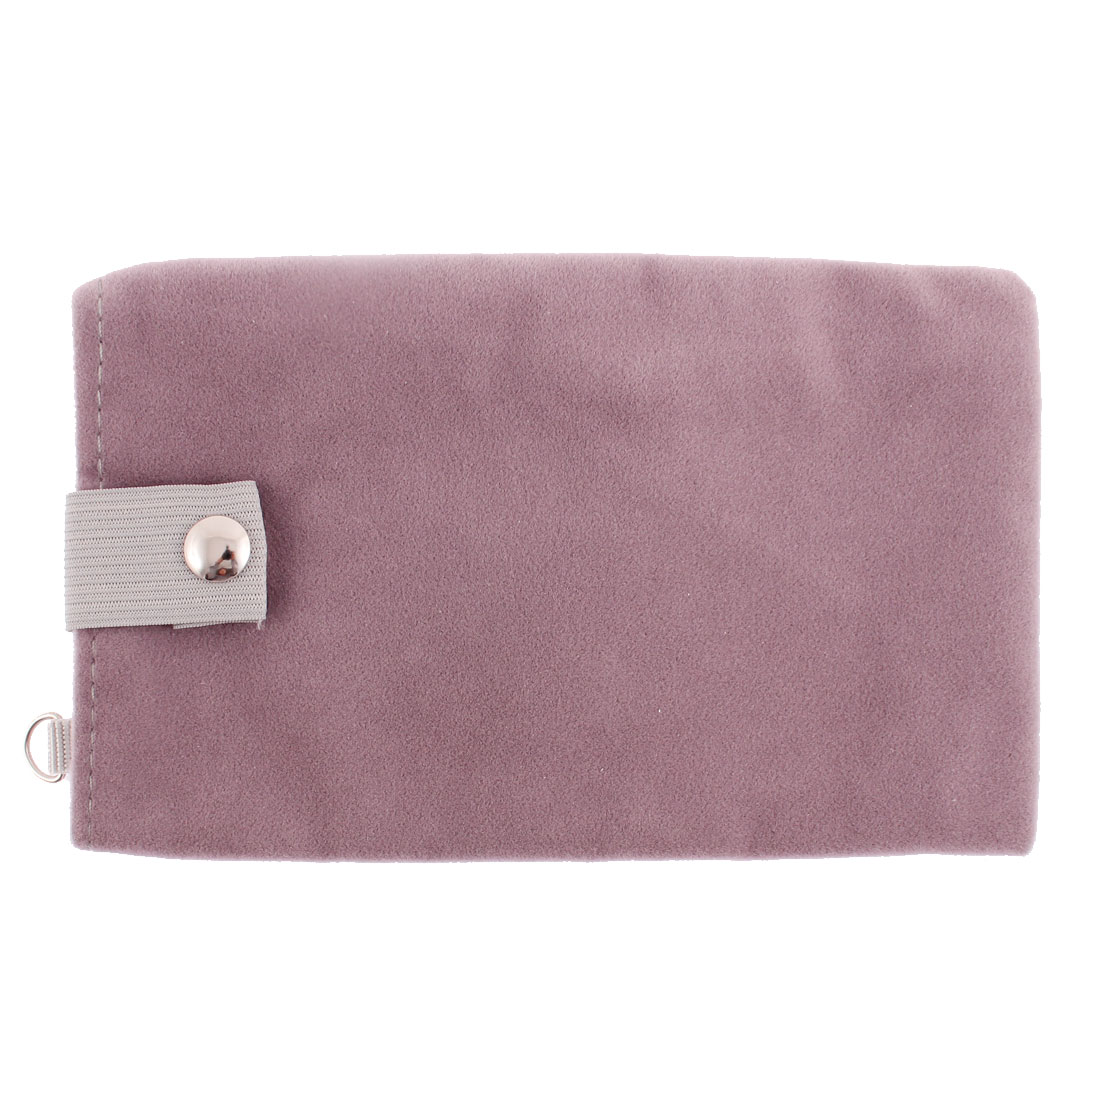 Sundries Cards Cell Phone Pouch Bag Holder Light Purple 7 Inch Length